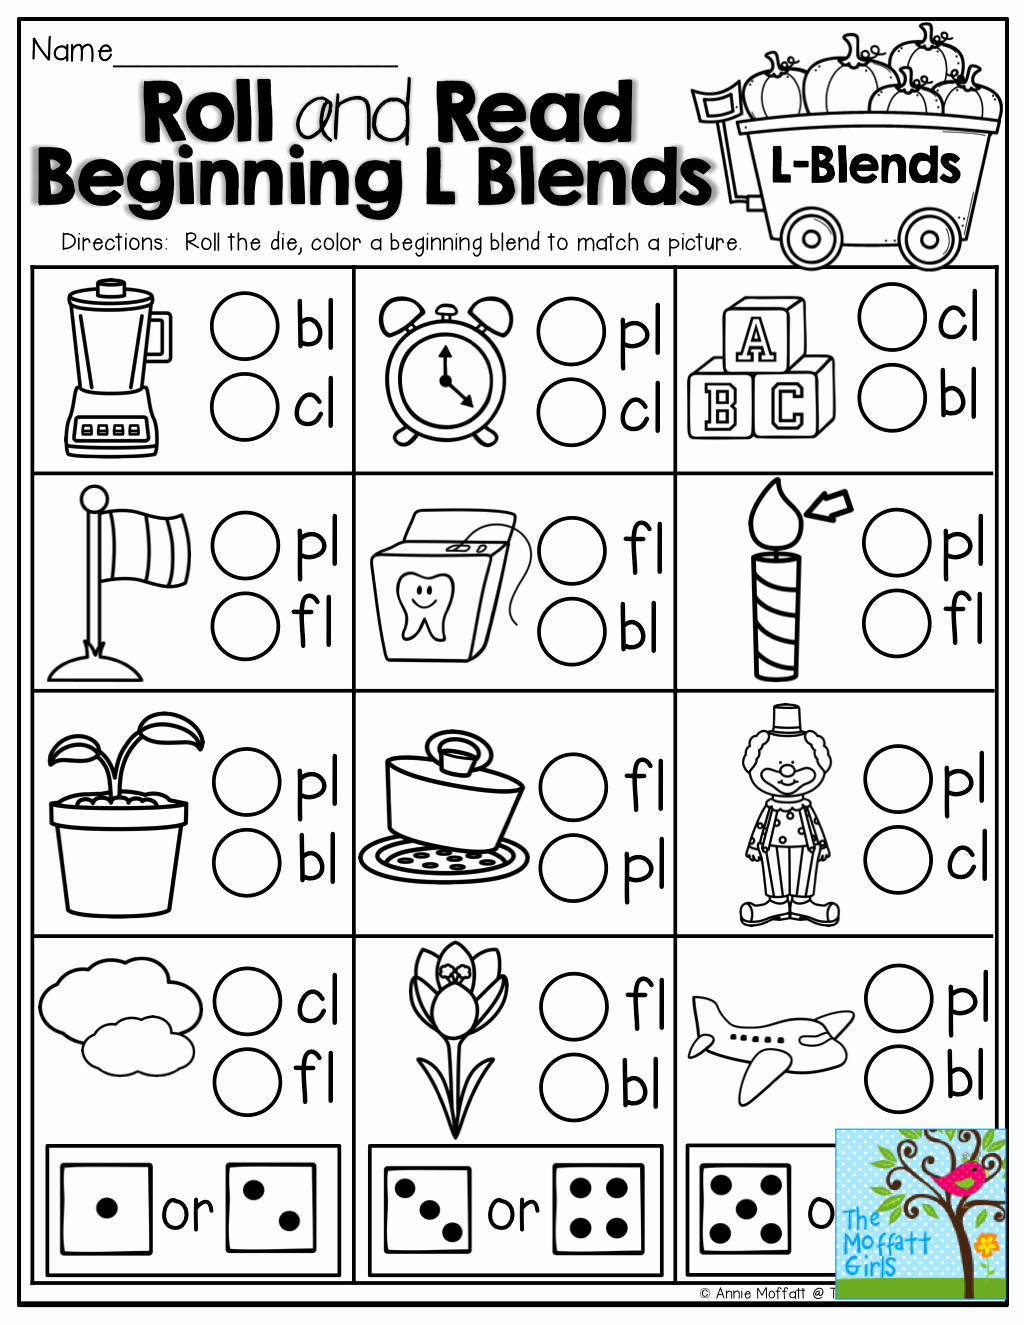 Blends Worksheet for First Grade Awesome First Grade Beginning Blends Worksheets thekidsworksheet